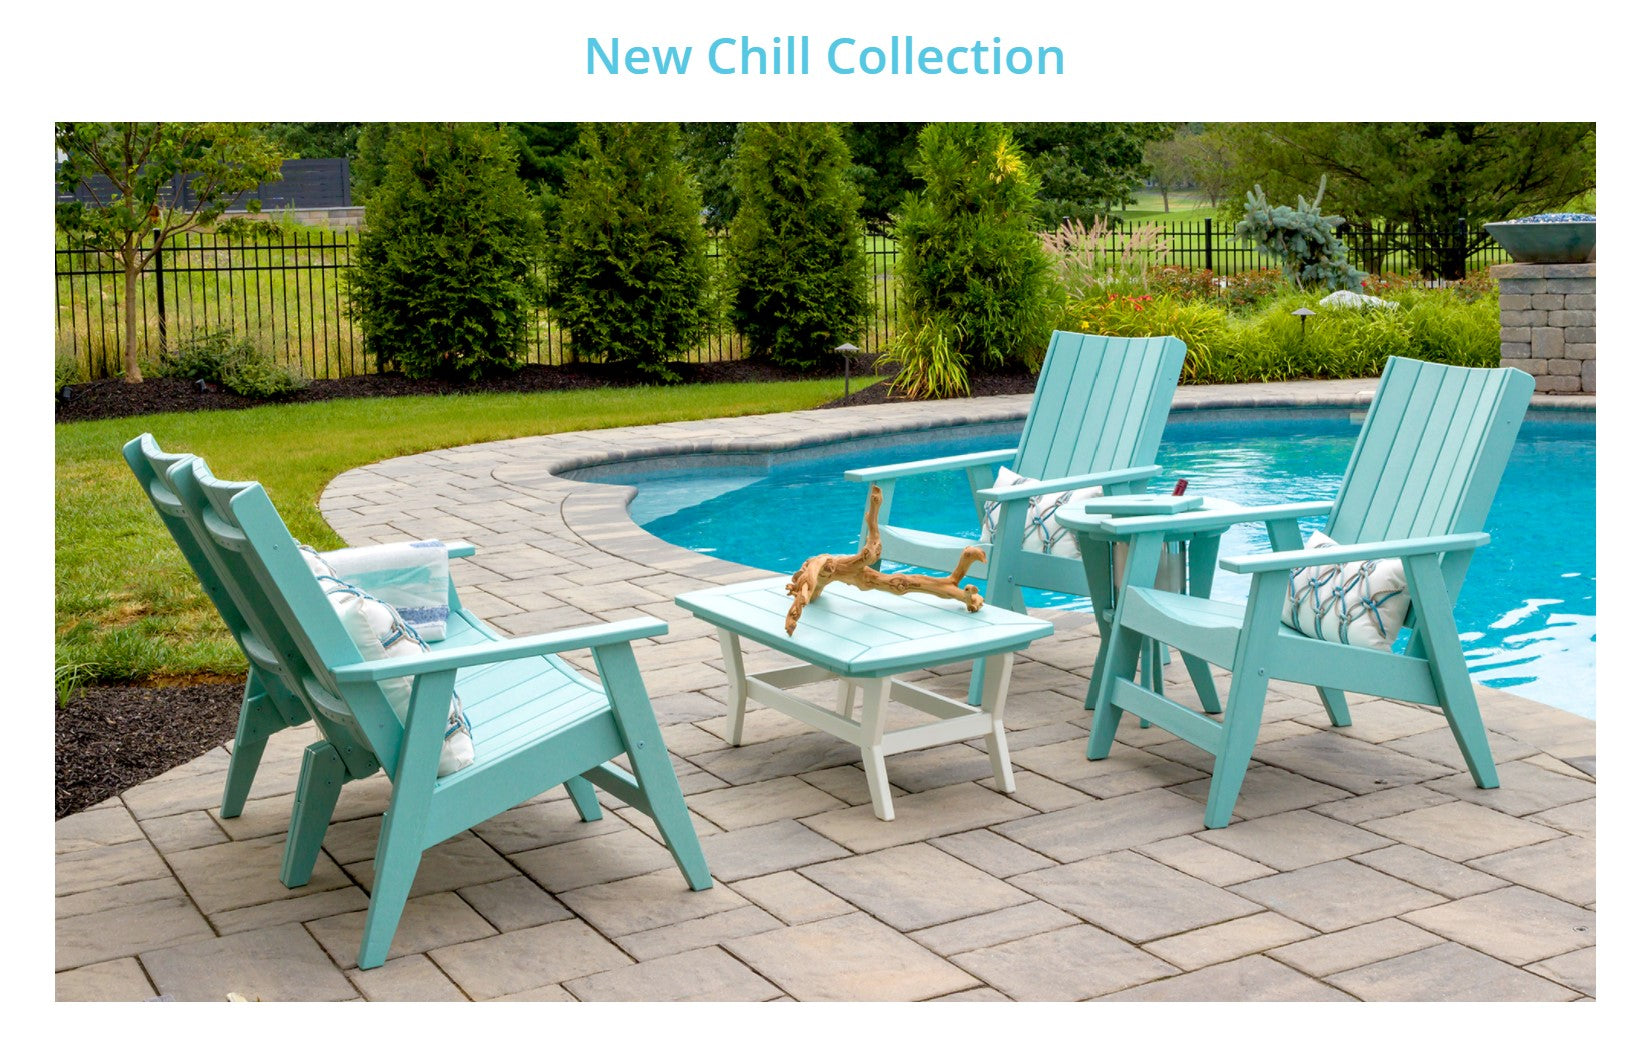 The Chill Collection - New for 2021